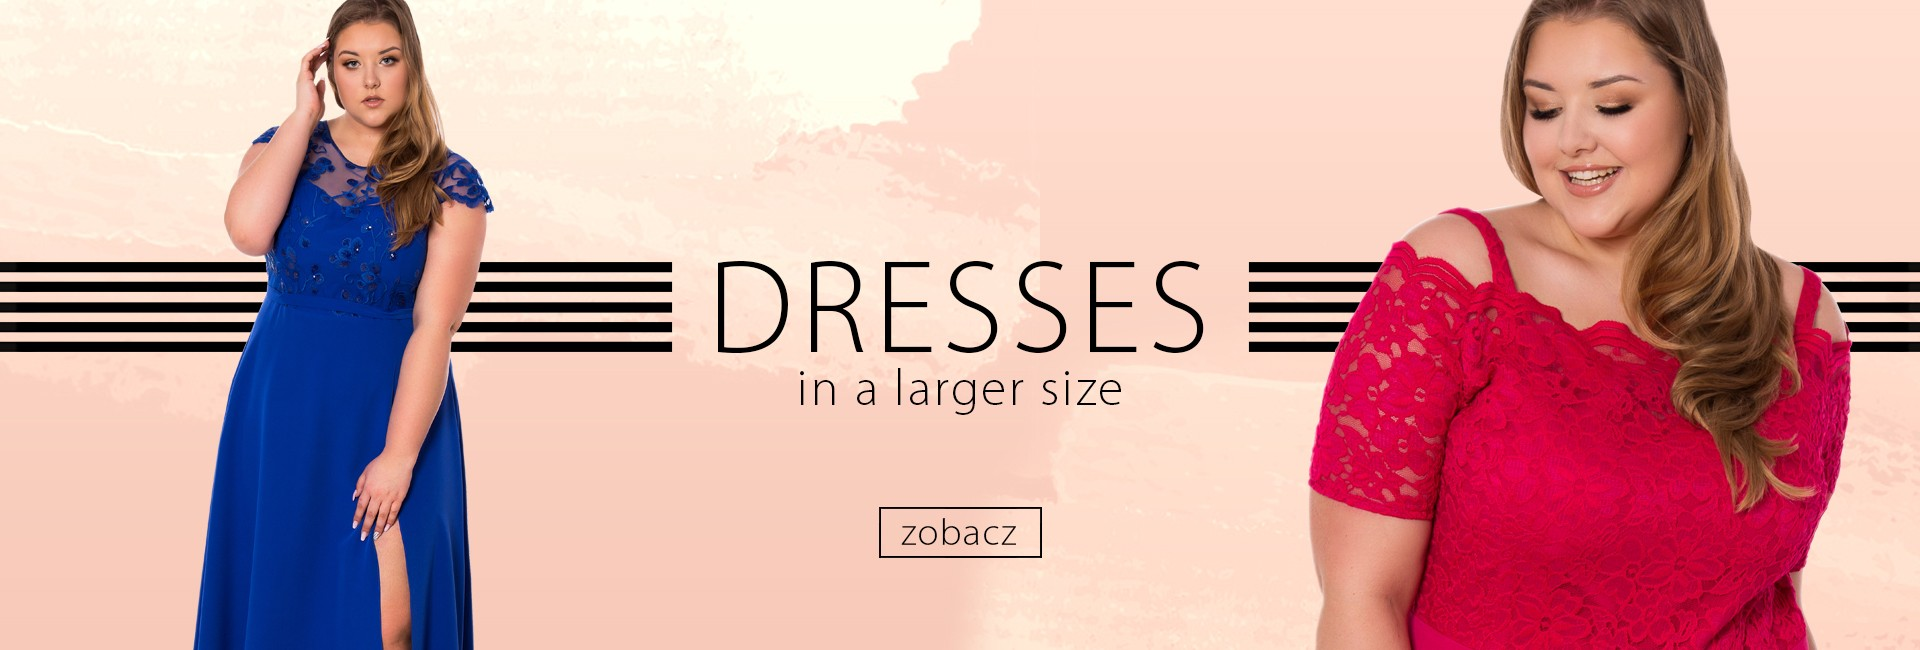 Dresses in large size